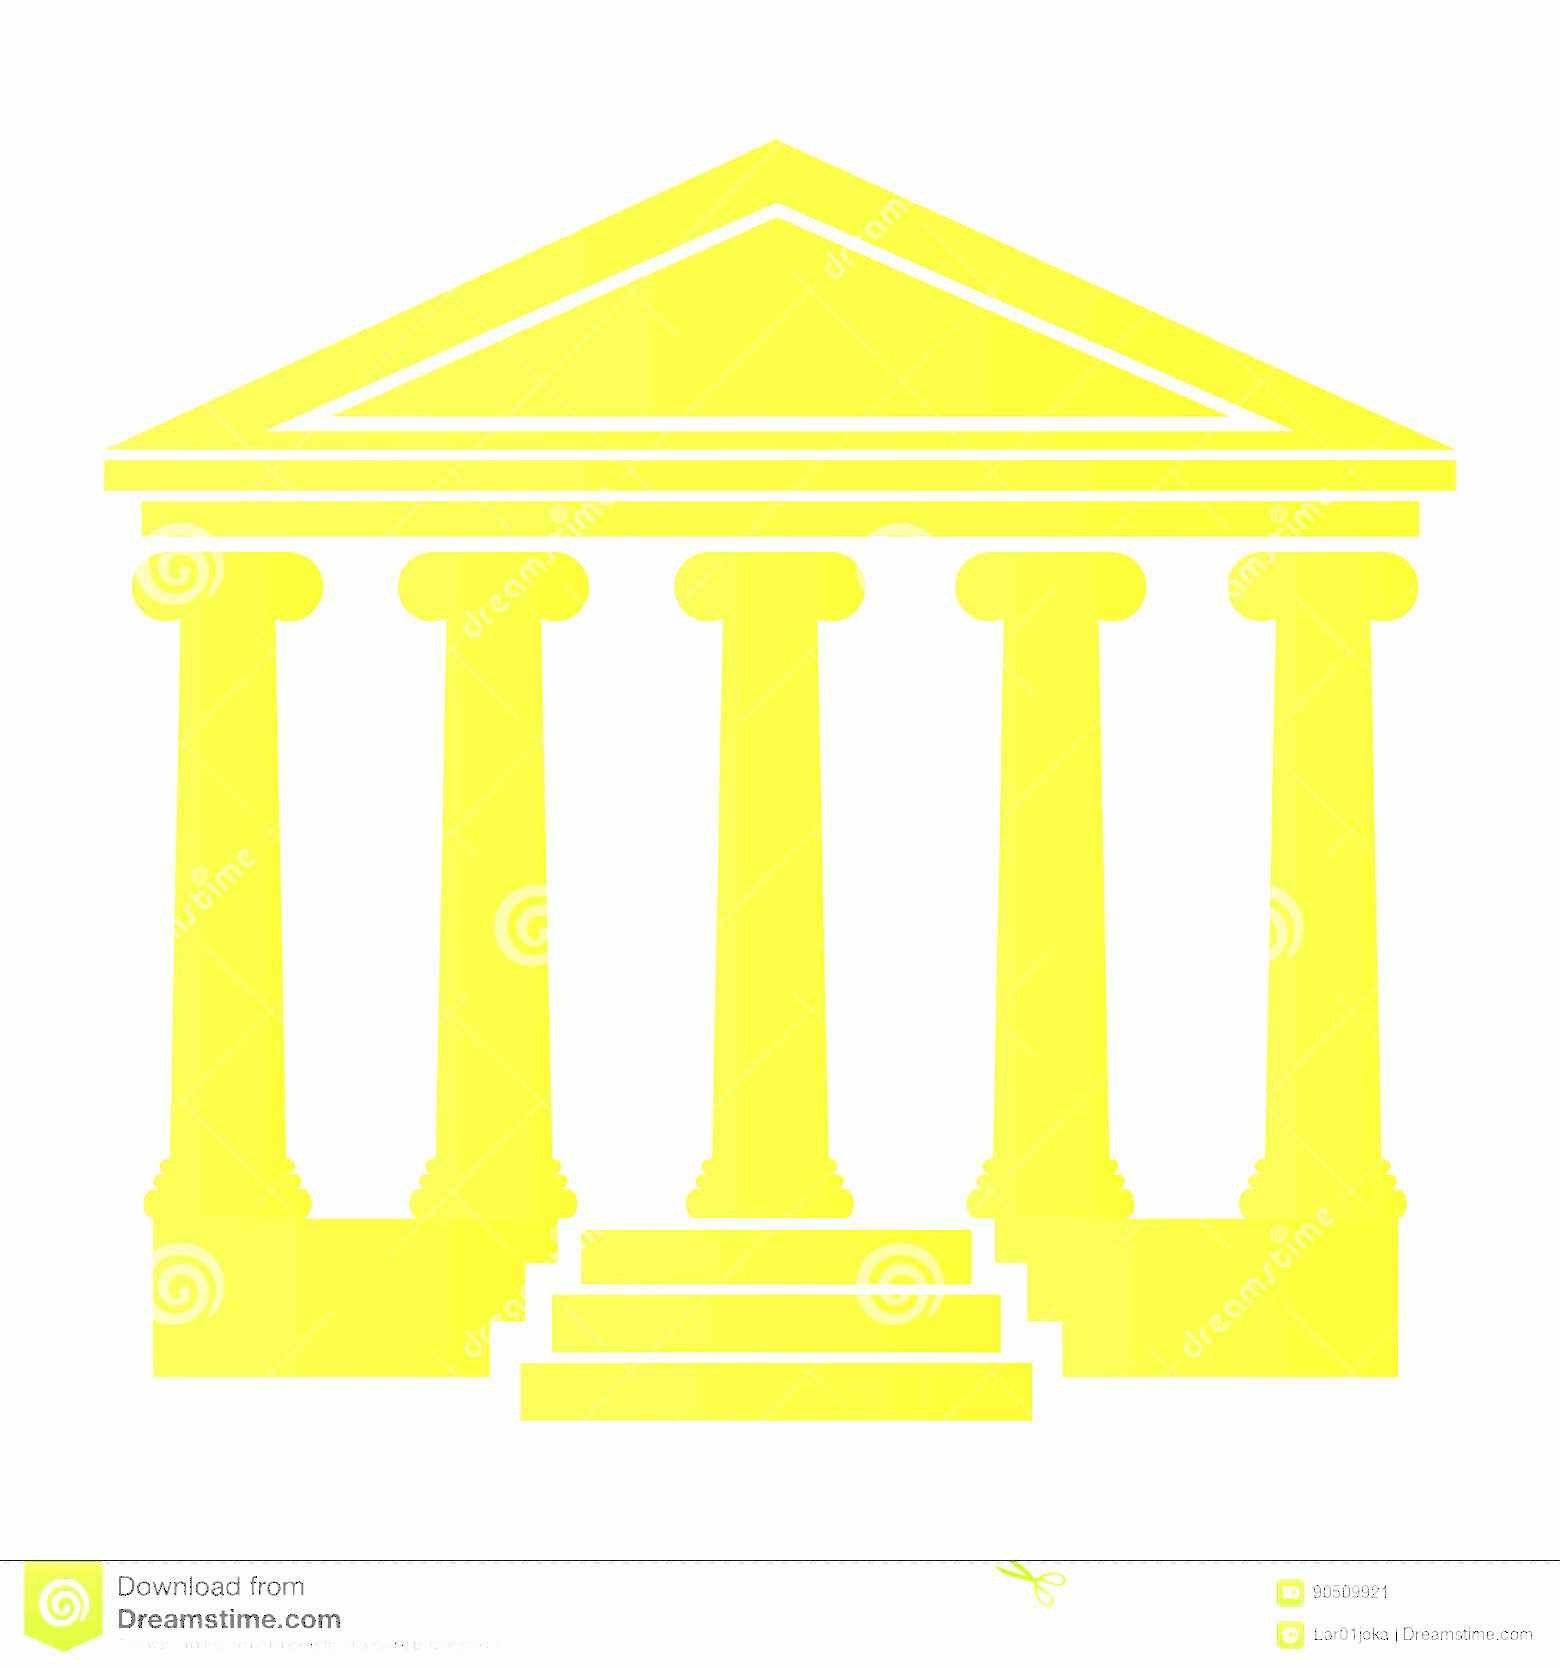 Court Building Vector: Stock Illustration Isolated Court Building Silhouette Vector Illustration Image